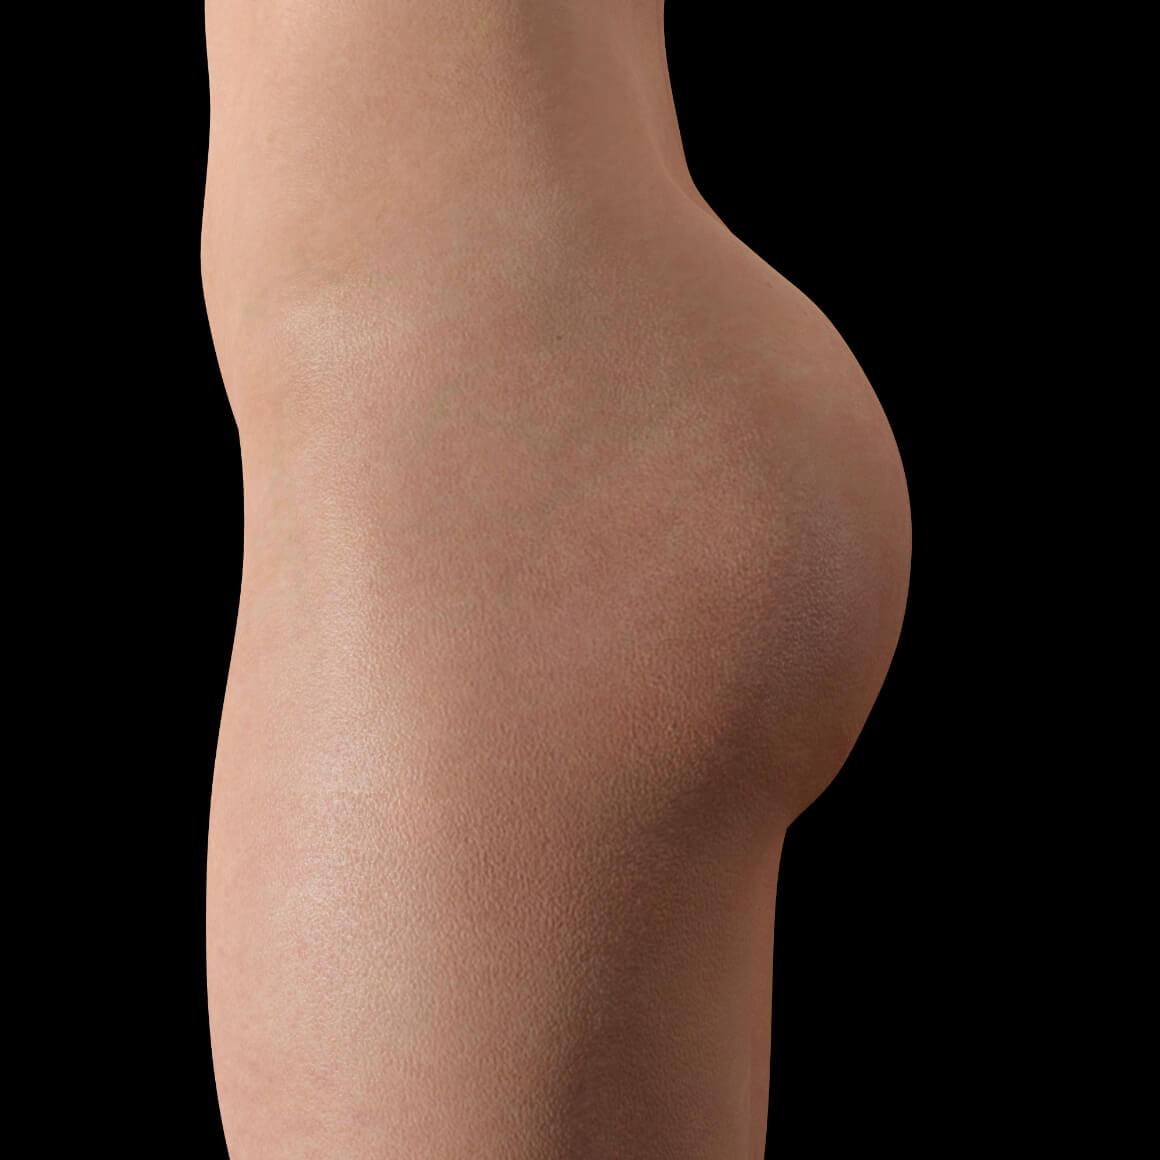 Female patient at Clinique Chloé positioned sideways after a non-surgical butt lift treatment with Sculptra injections